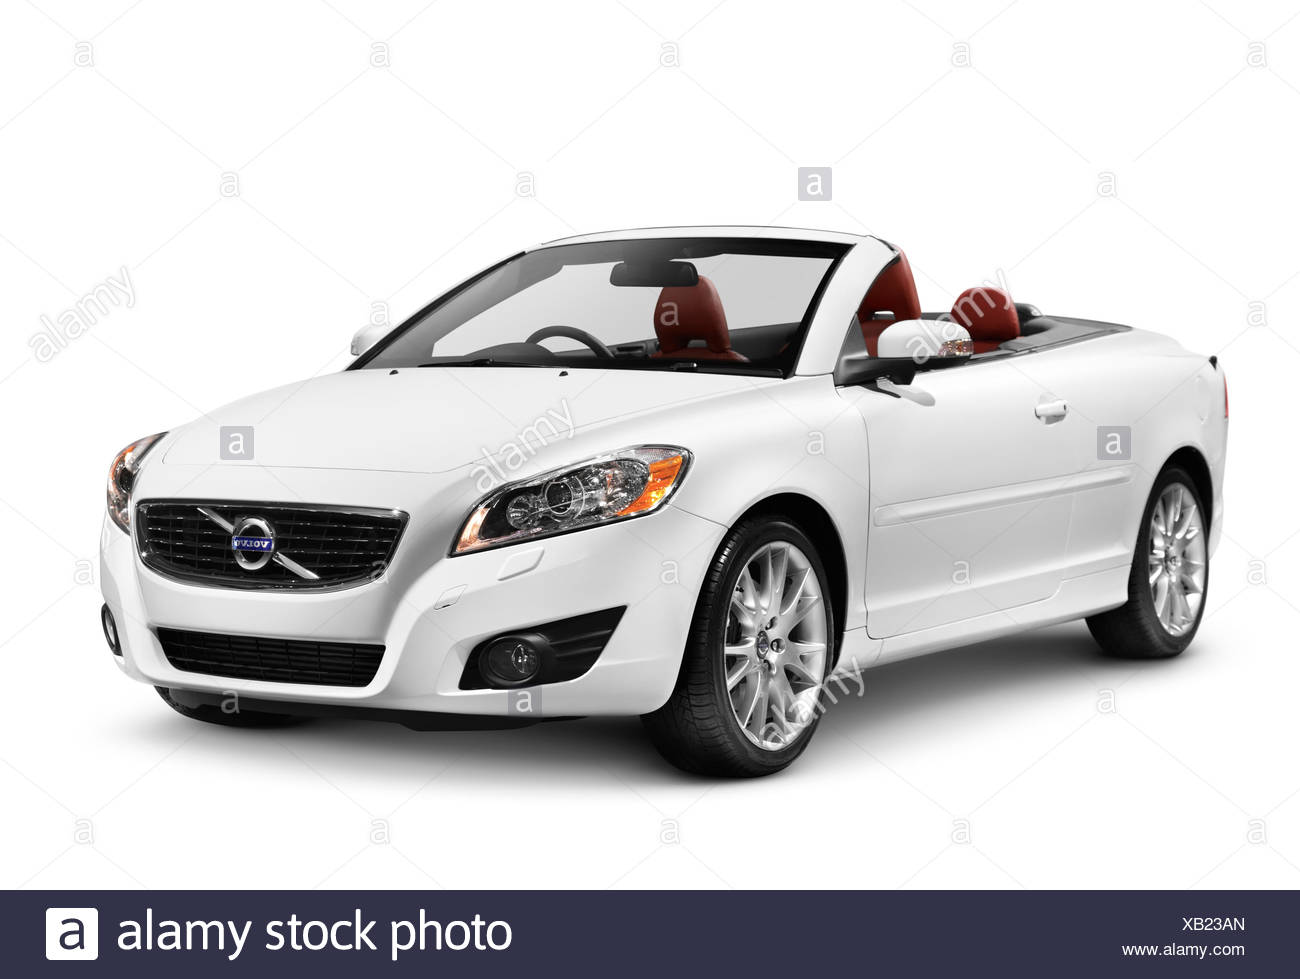 White 2011 Volvo C70 Coupe Convertible car - Stock Image